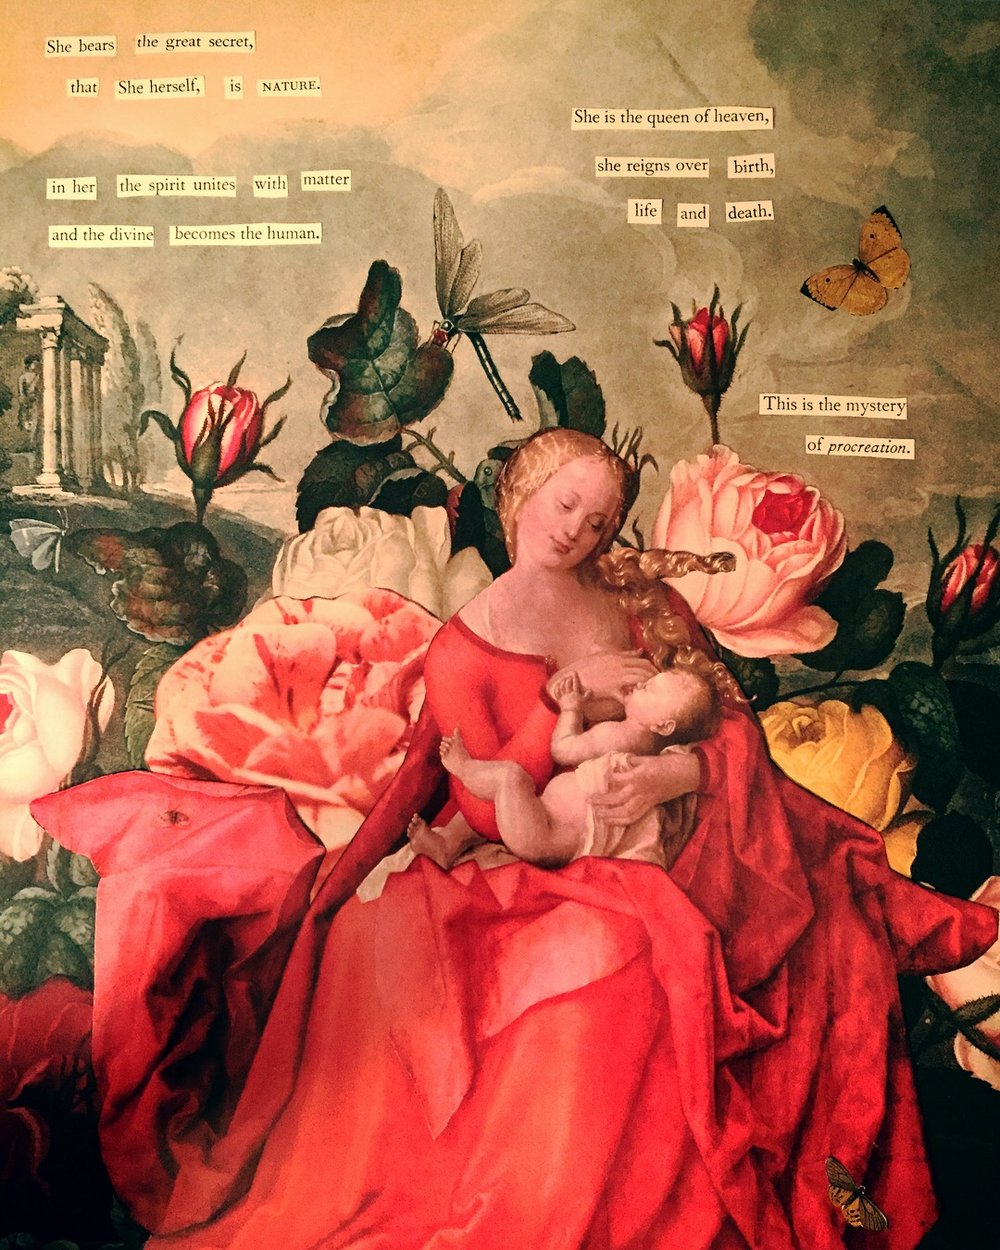 The Mystery of Procreation by Joan Pope (sexdeathrebirth)